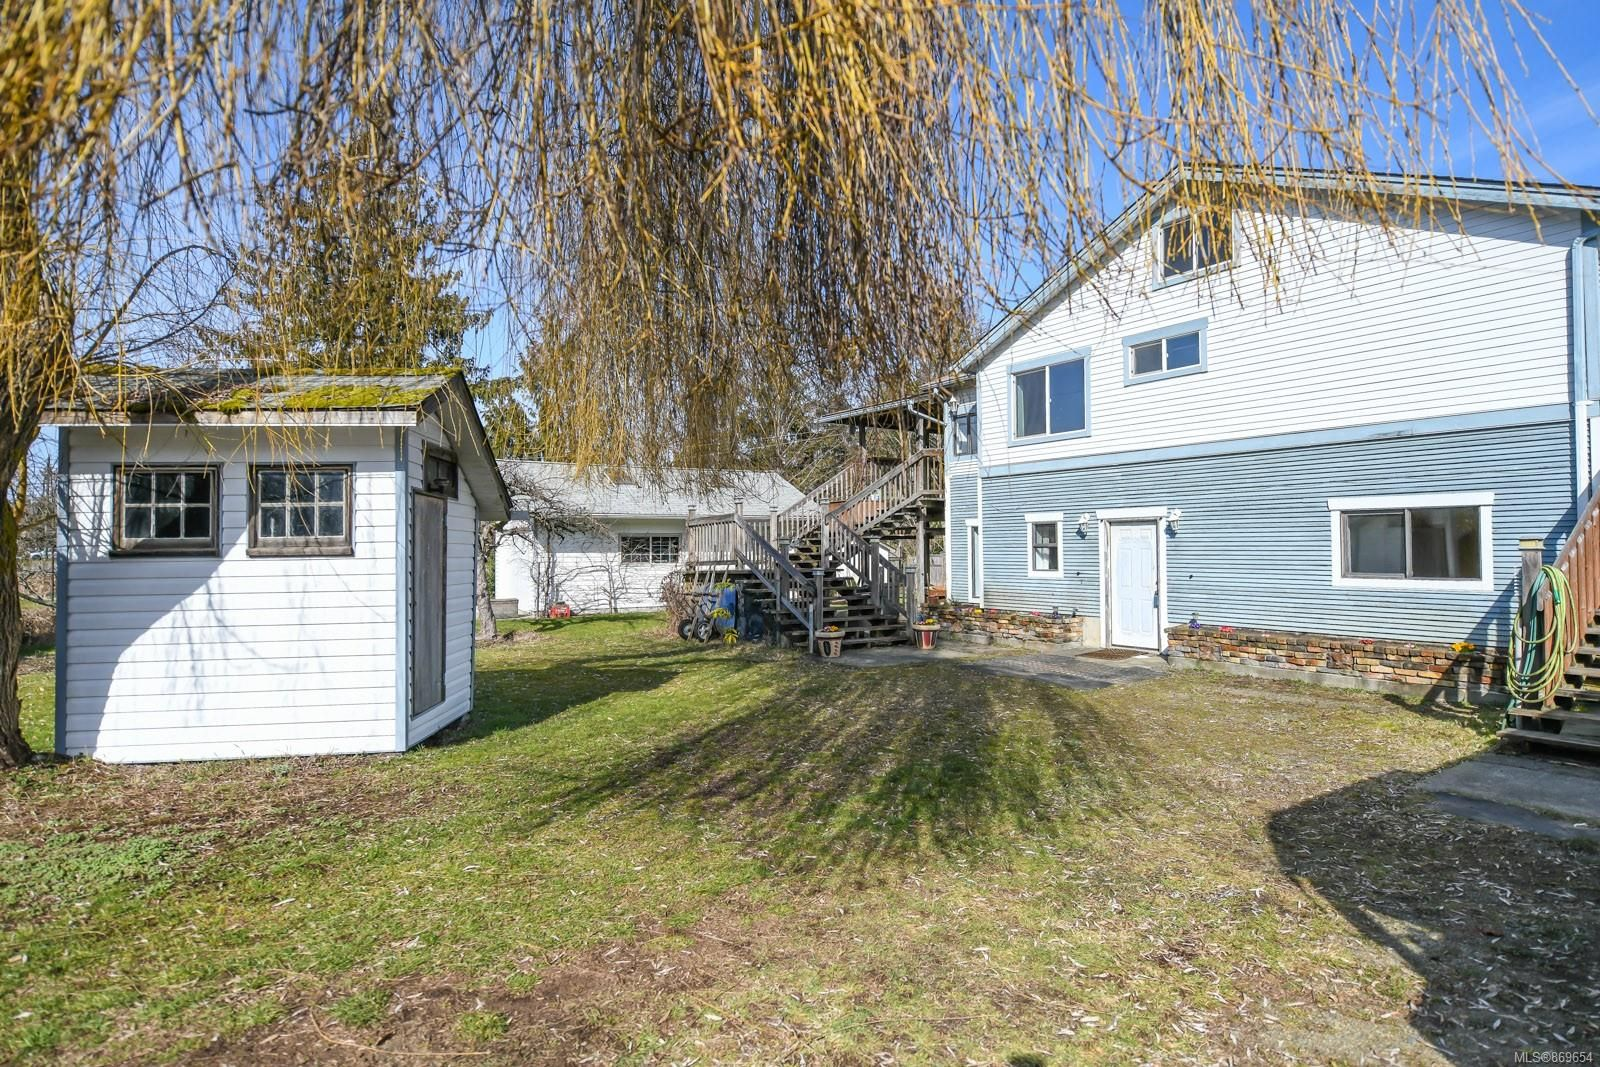 Photo 2: Photos: 4712 Cumberland Rd in : CV Cumberland House for sale (Comox Valley)  : MLS®# 869654